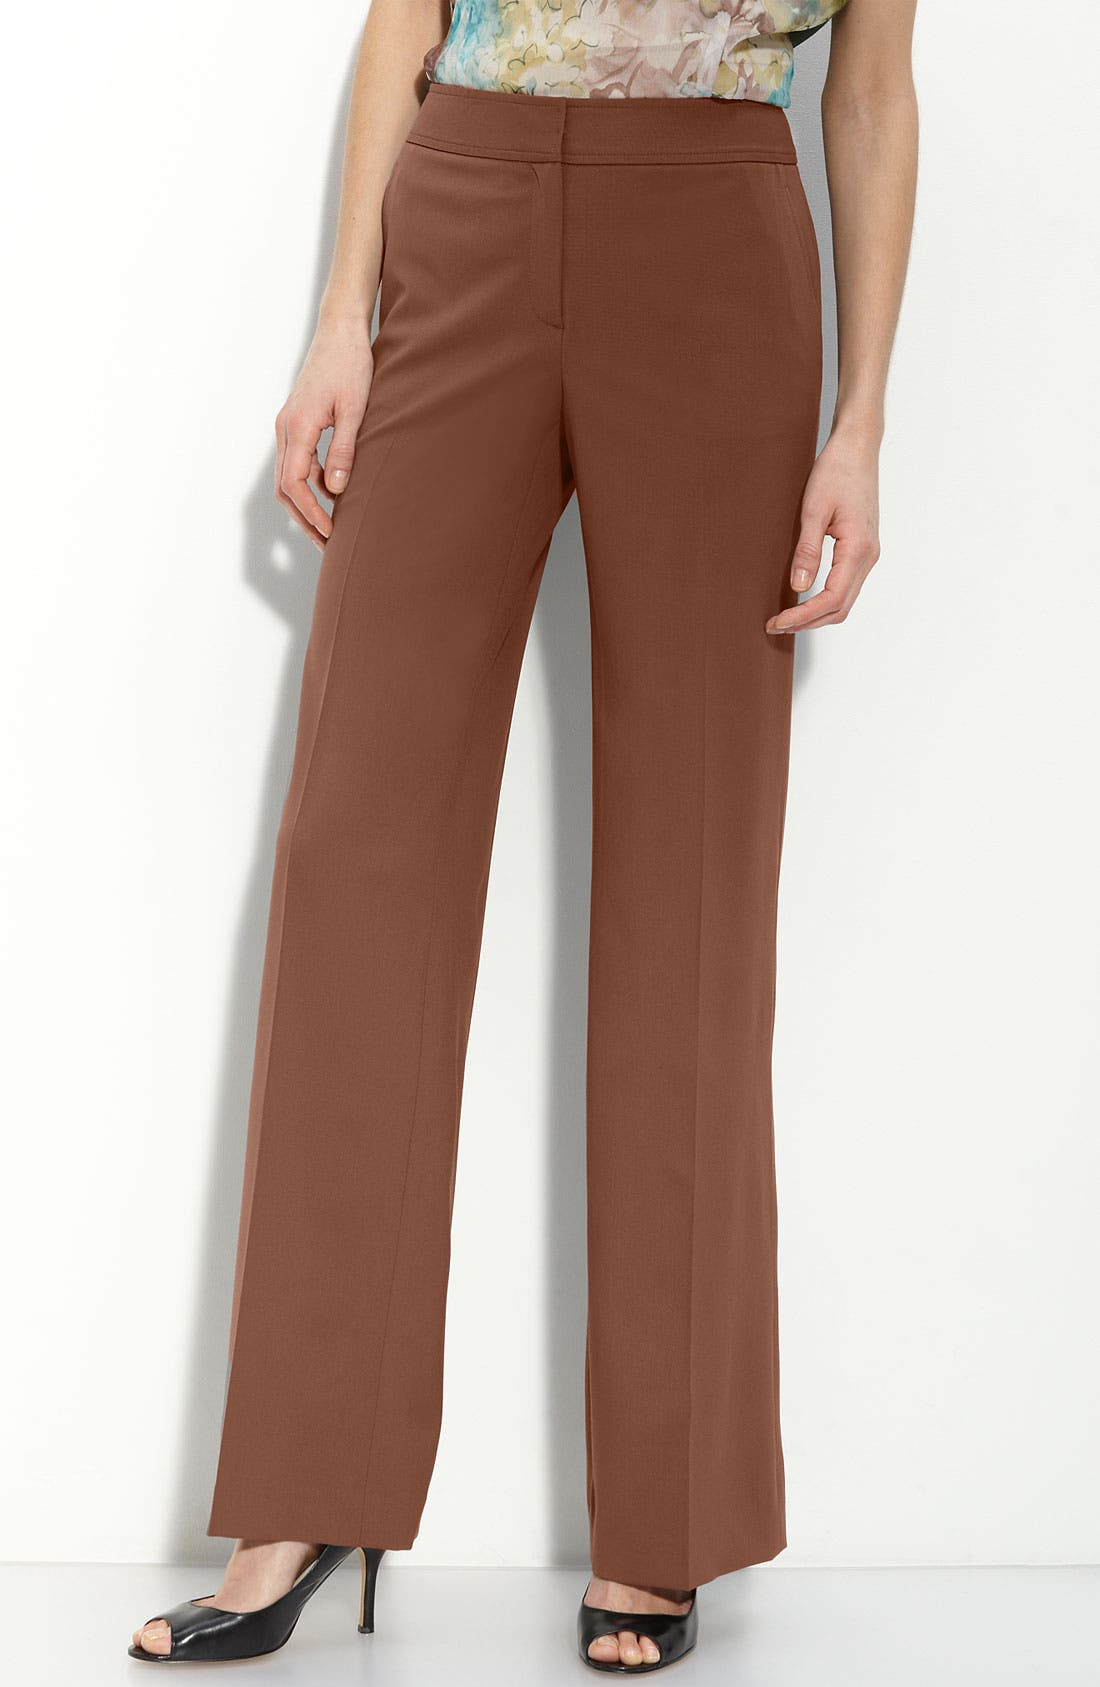 Alternate Image 1 Selected - Lafayette 148 New York 'Delancey' Stretch Wool Pants